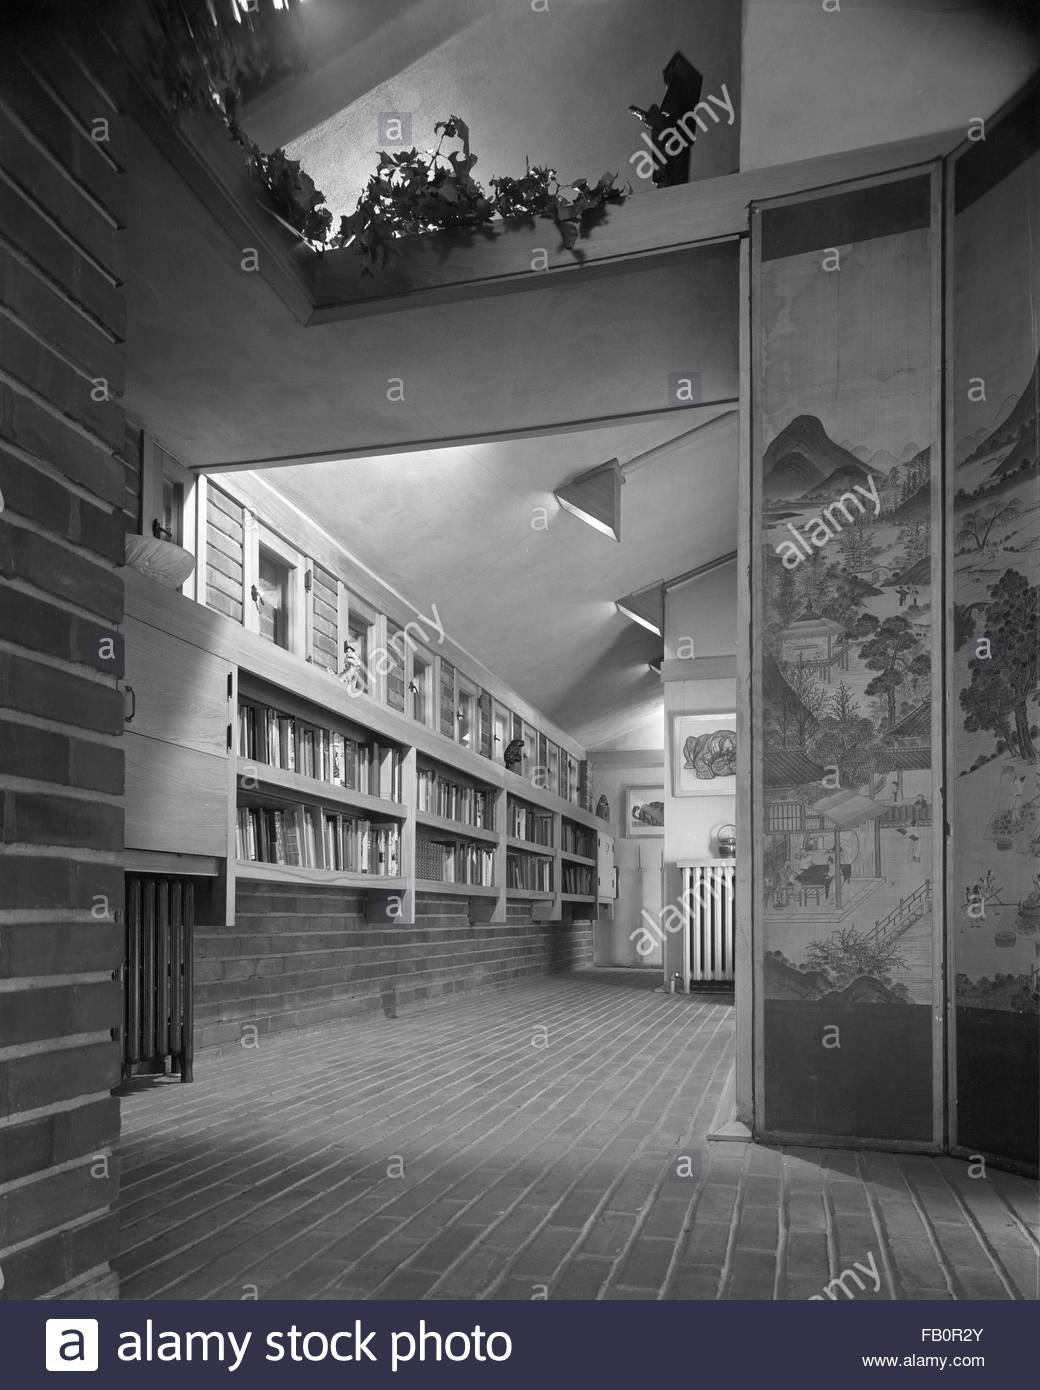 Malcom E. Willey residence in Minneapolis (Minn.), 1937 Dec. A book-lined corridor with a Japanese screen. - Stock Image